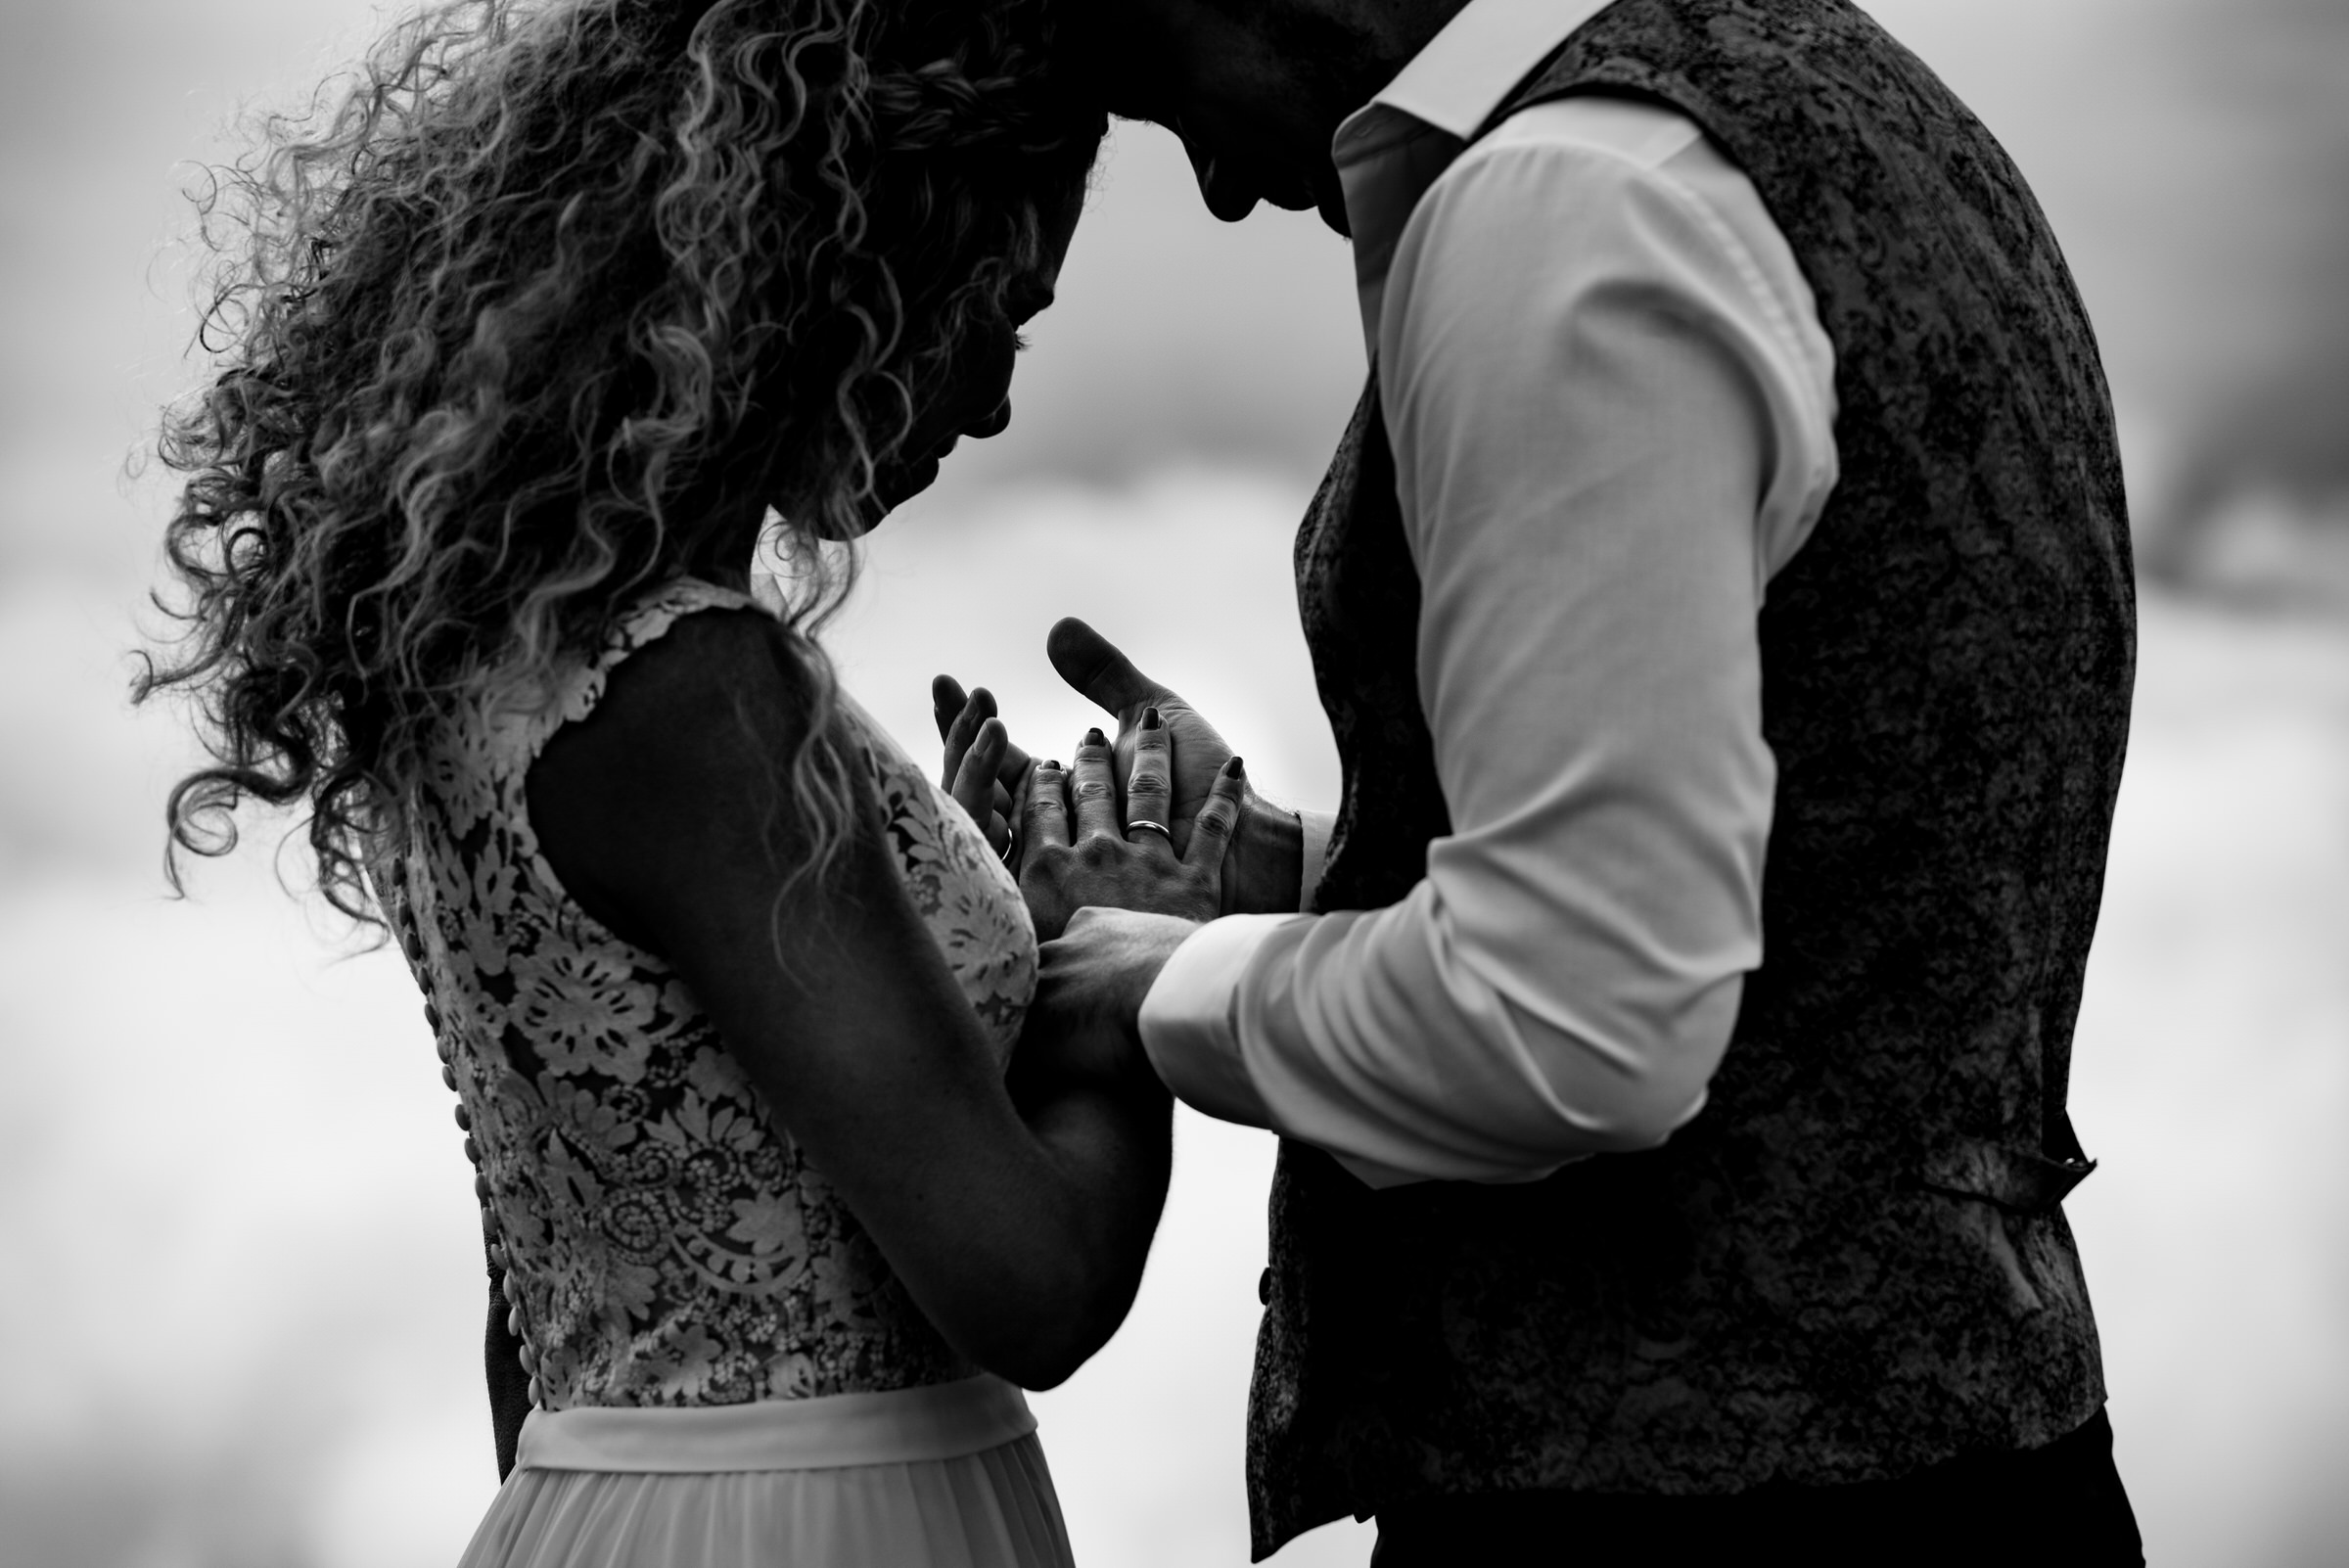 Intimate couple portrait with wedding ring - photo by Angela Nelson Photography